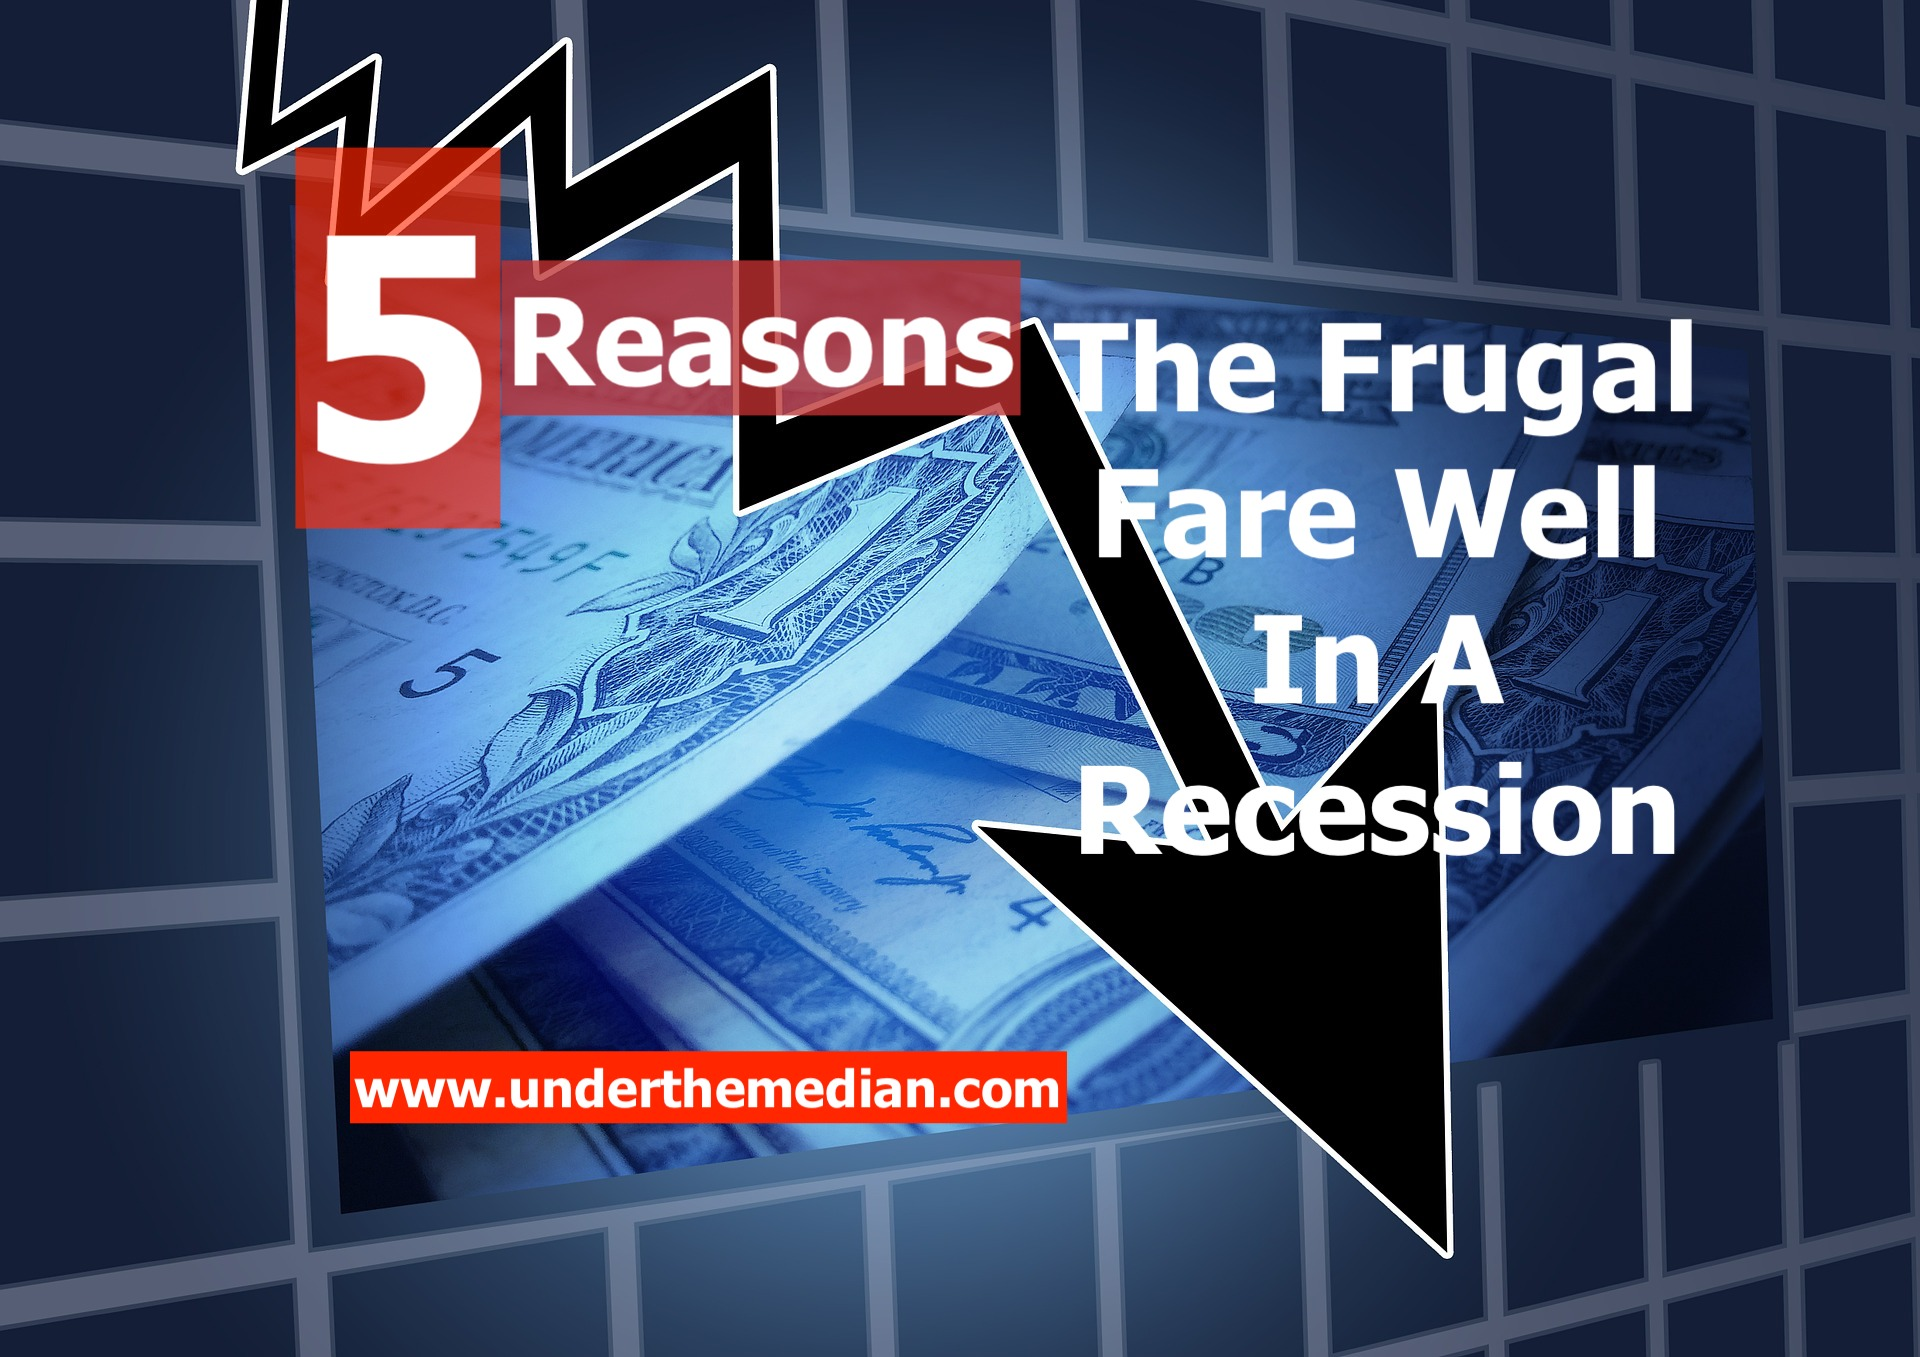 5 Reasons the Frugal Fare Well in a Recession